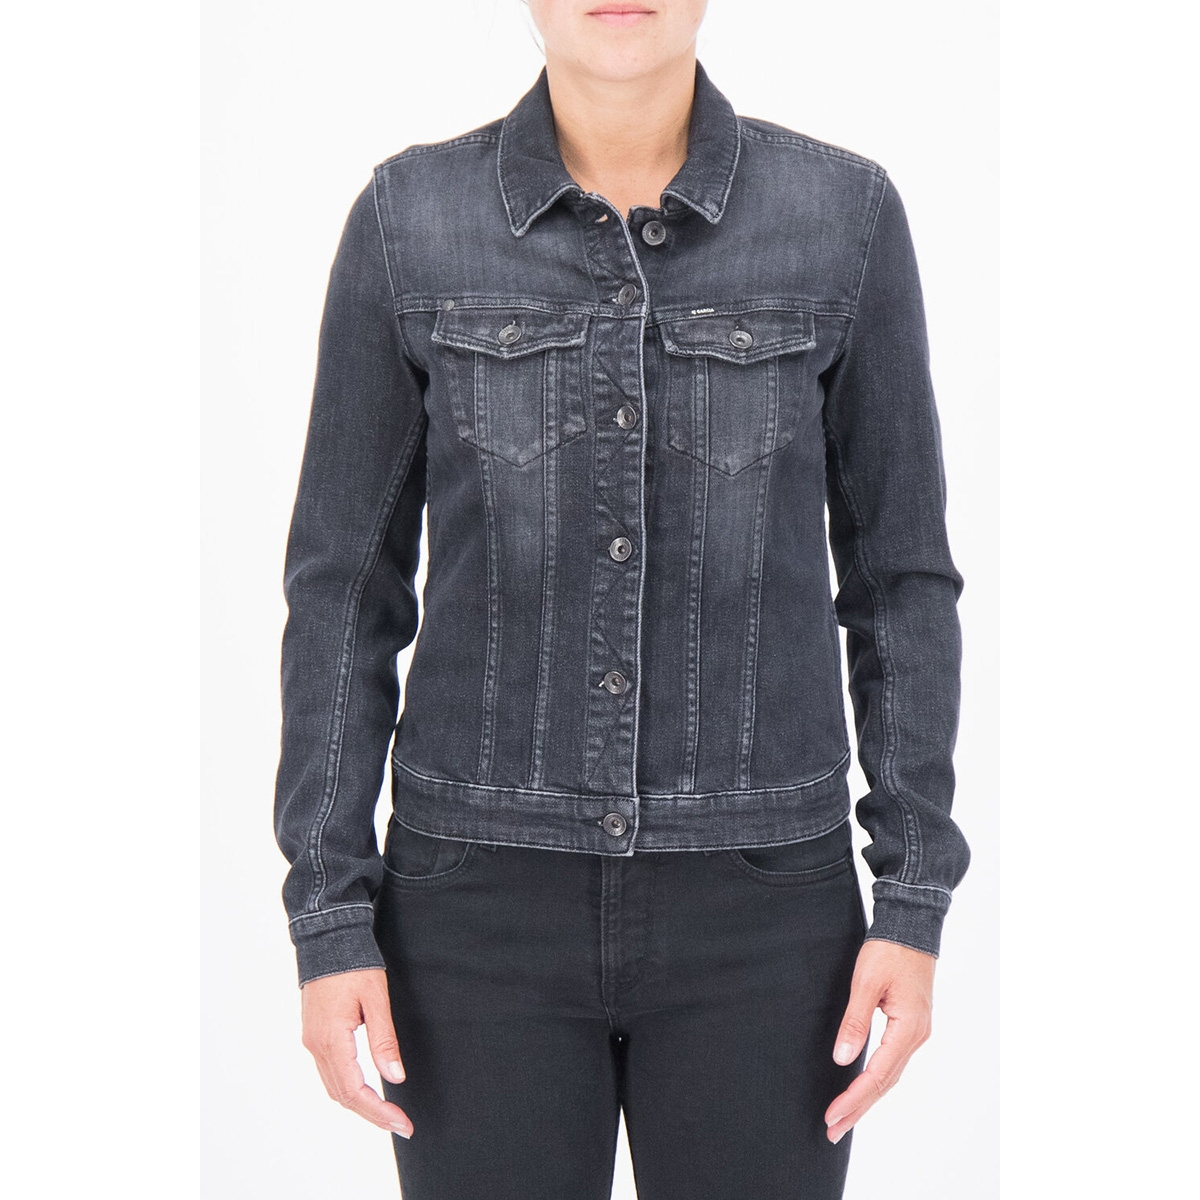 sofia slim fit 700 garcia jas 7890 motion denim dark used